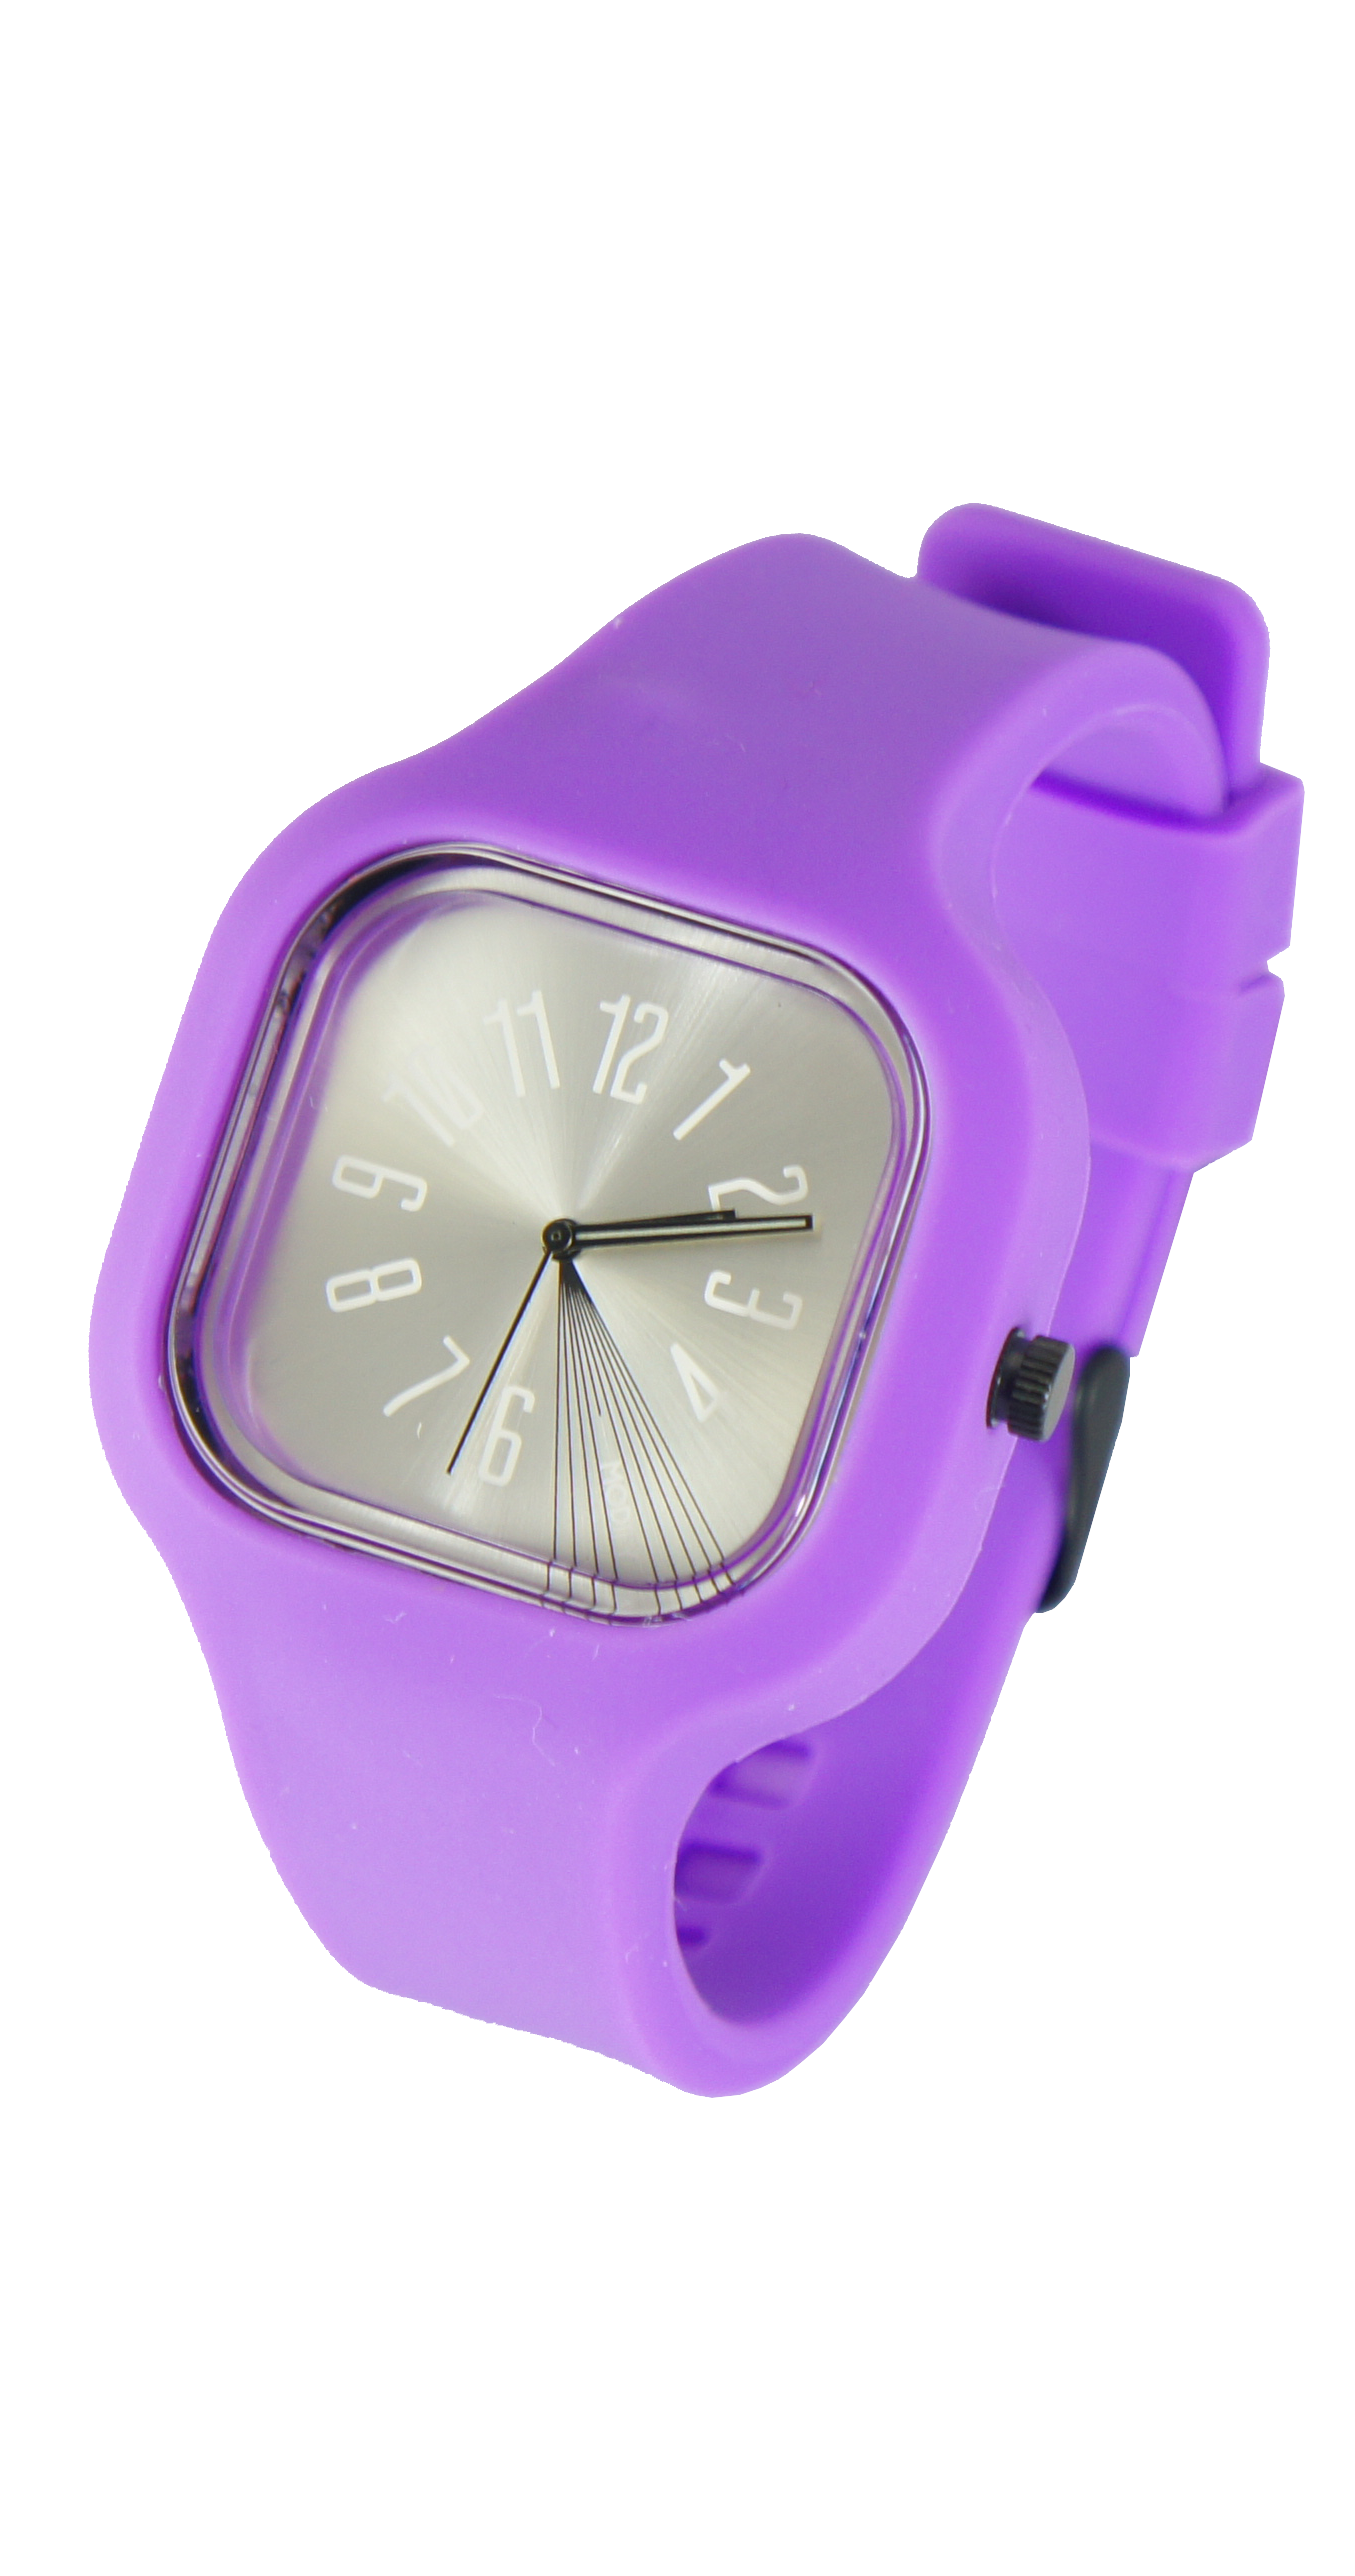 5ed13f2d03c The Modify watches are fun, colorful and personalized with almost infinite  combinations. You can combine your style with your mood and show your colors .